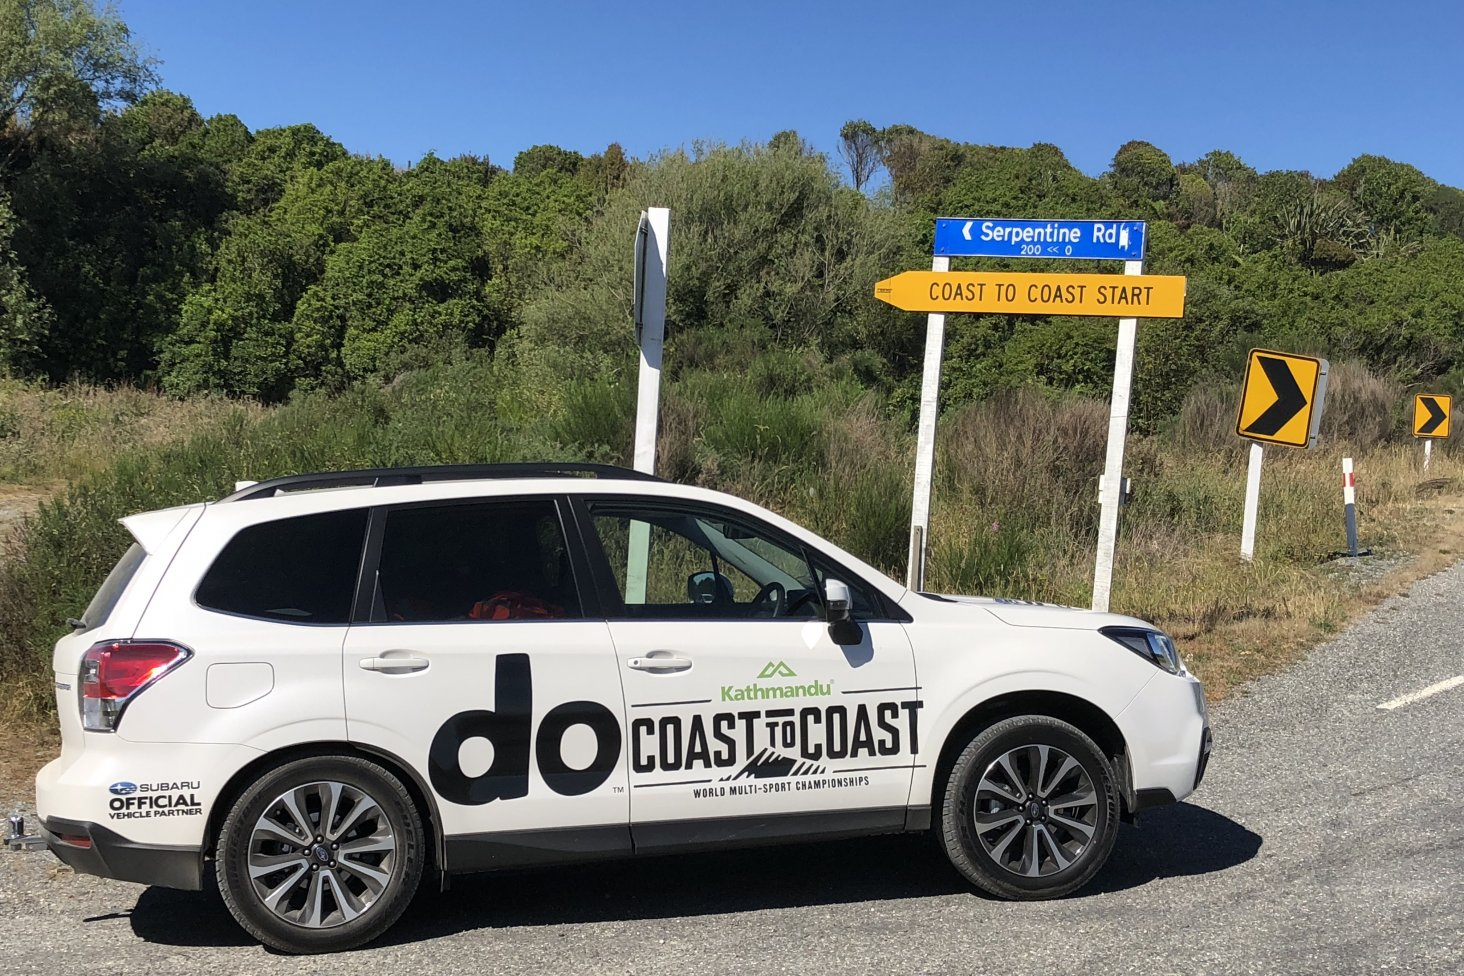 Subaru of New Zealand is the official vehicle supplier for the 2018 Kathmandu Coast to Coast.